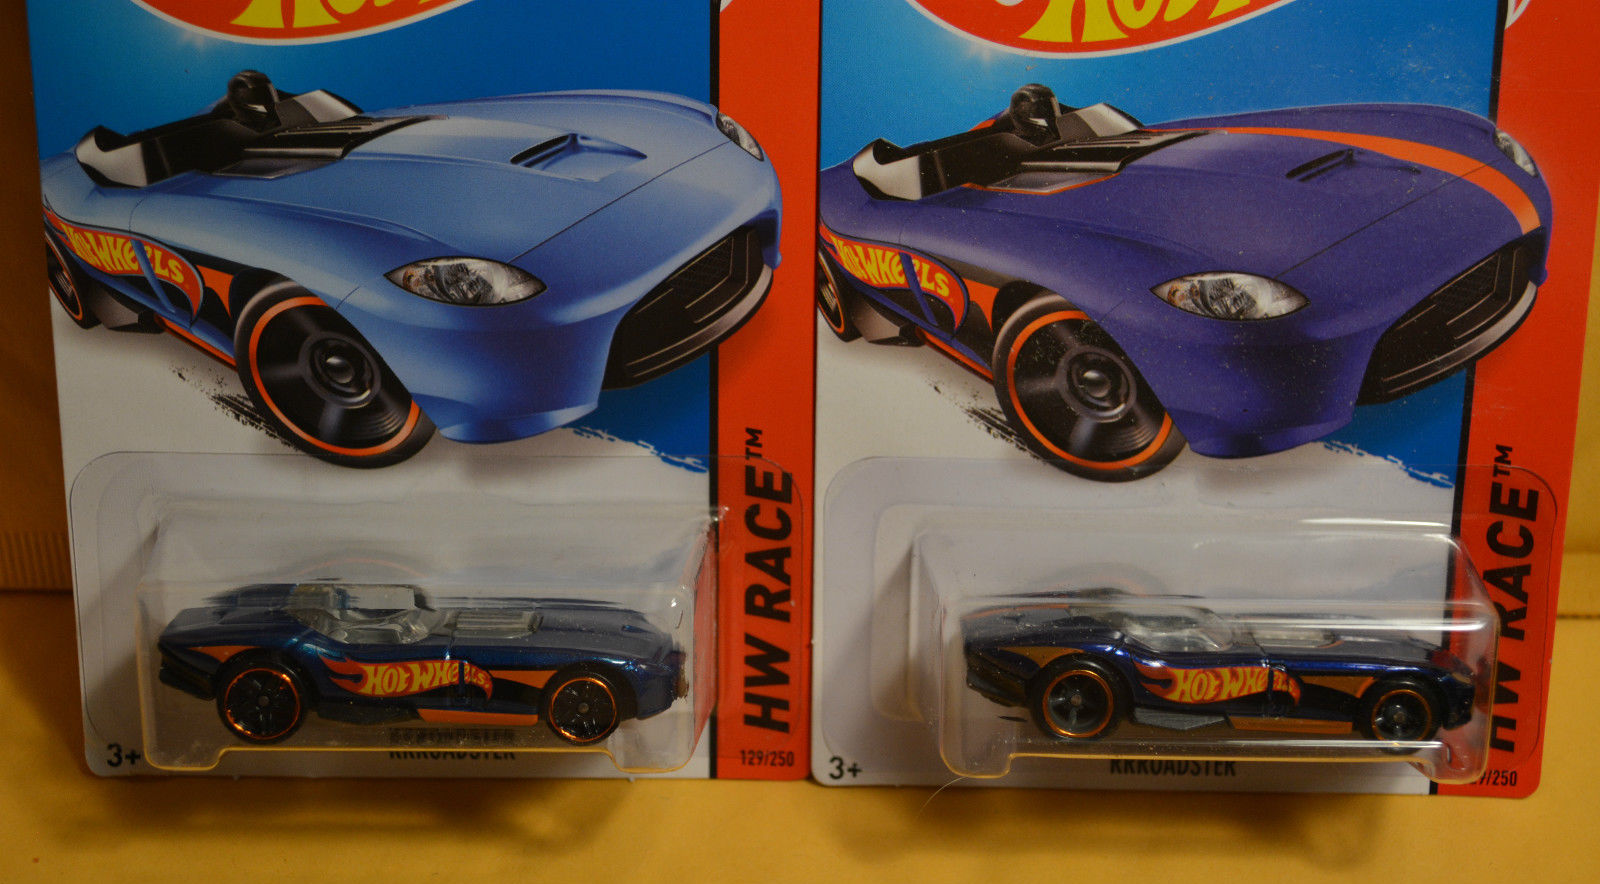 2015 Hot Wheels Super Treasure Hunt Rrroadster - Hall's Guide for Hot